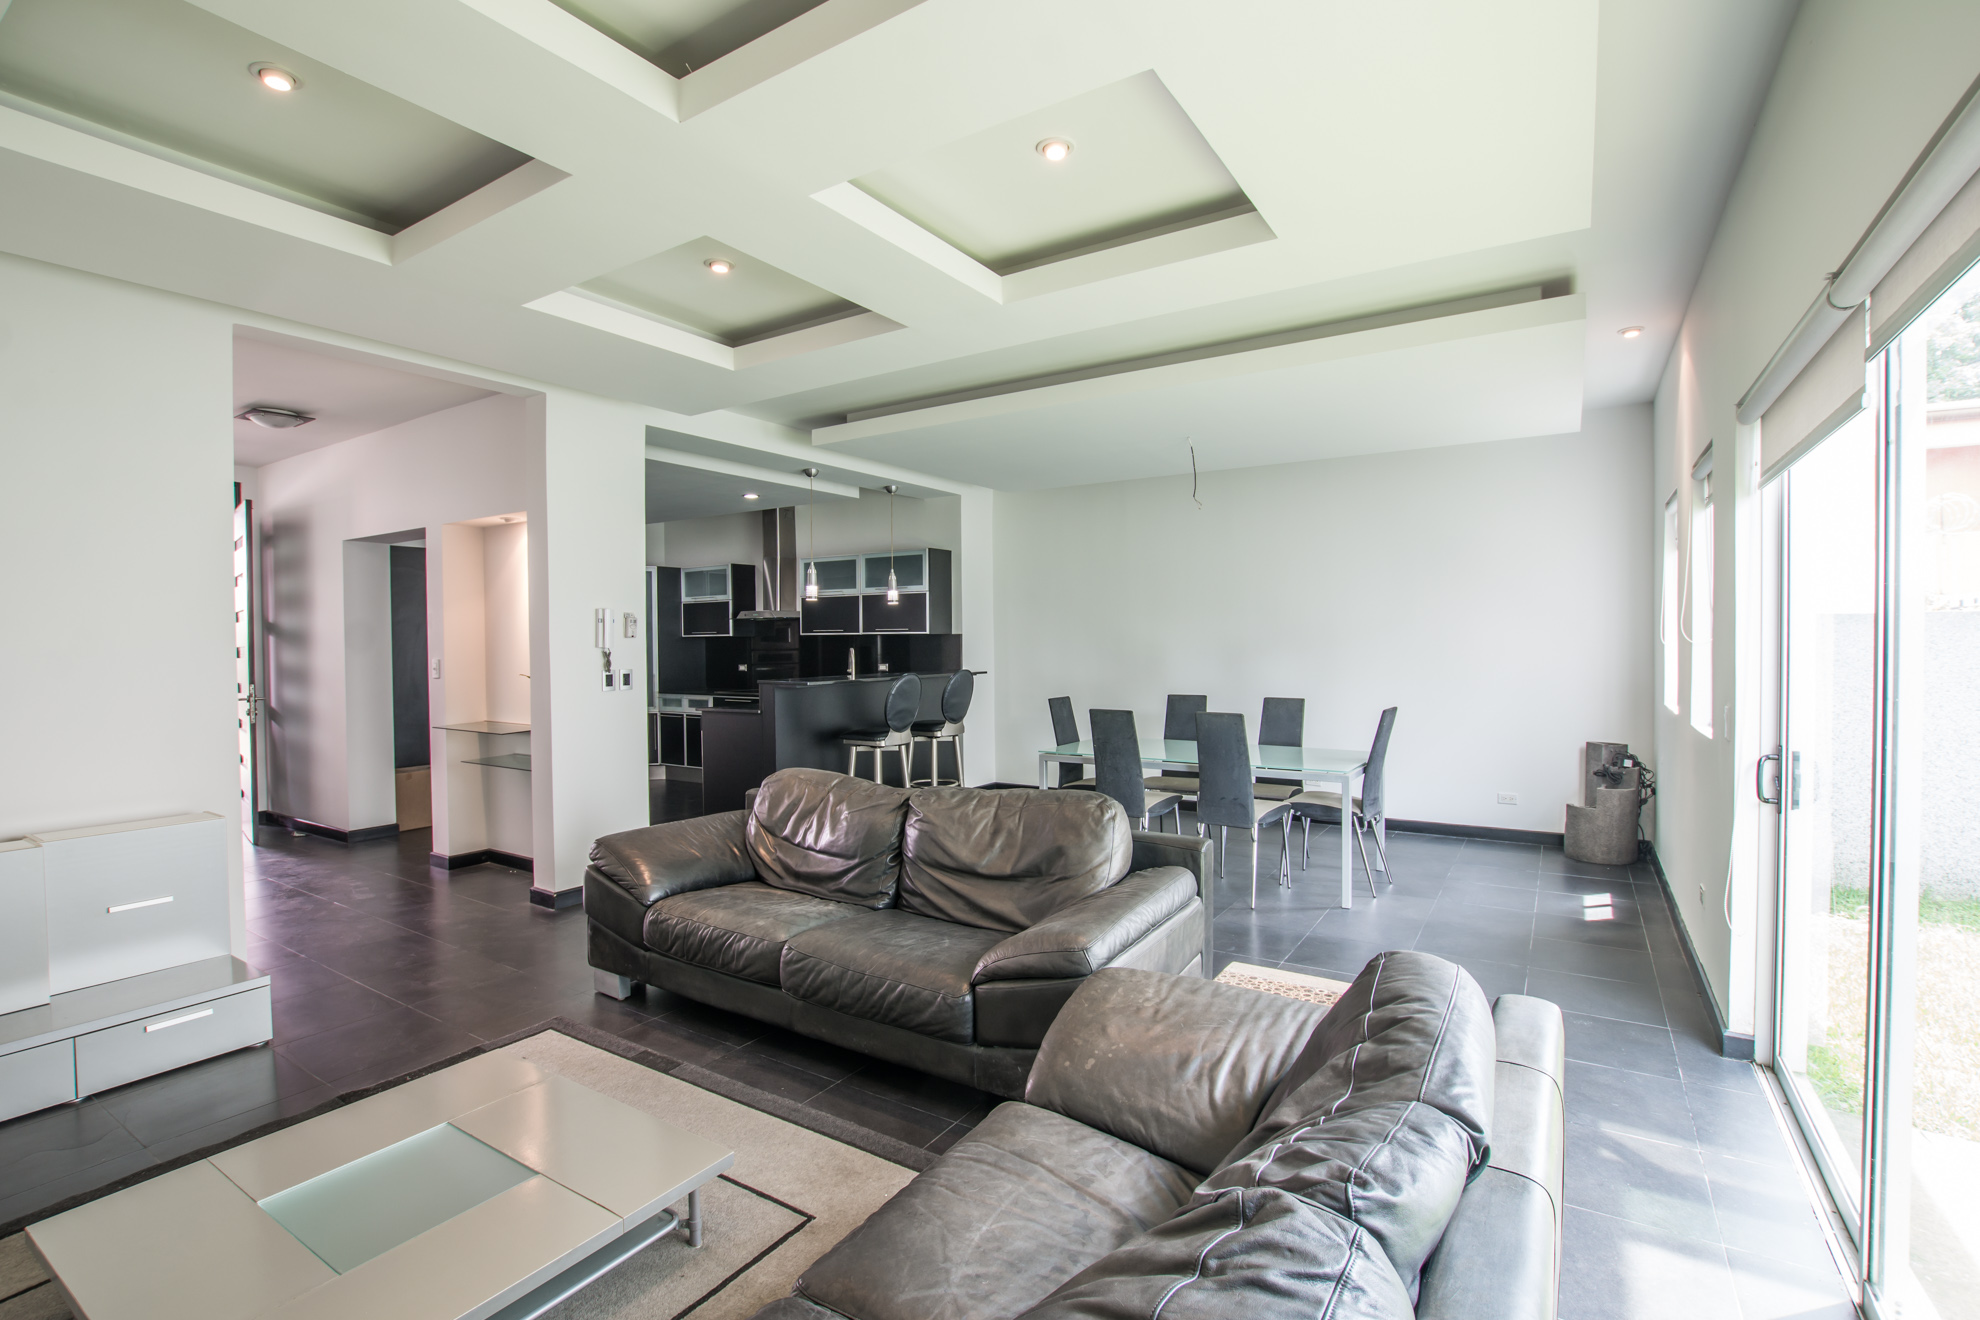 Modern home loft style in small condominium with 24/7 security.